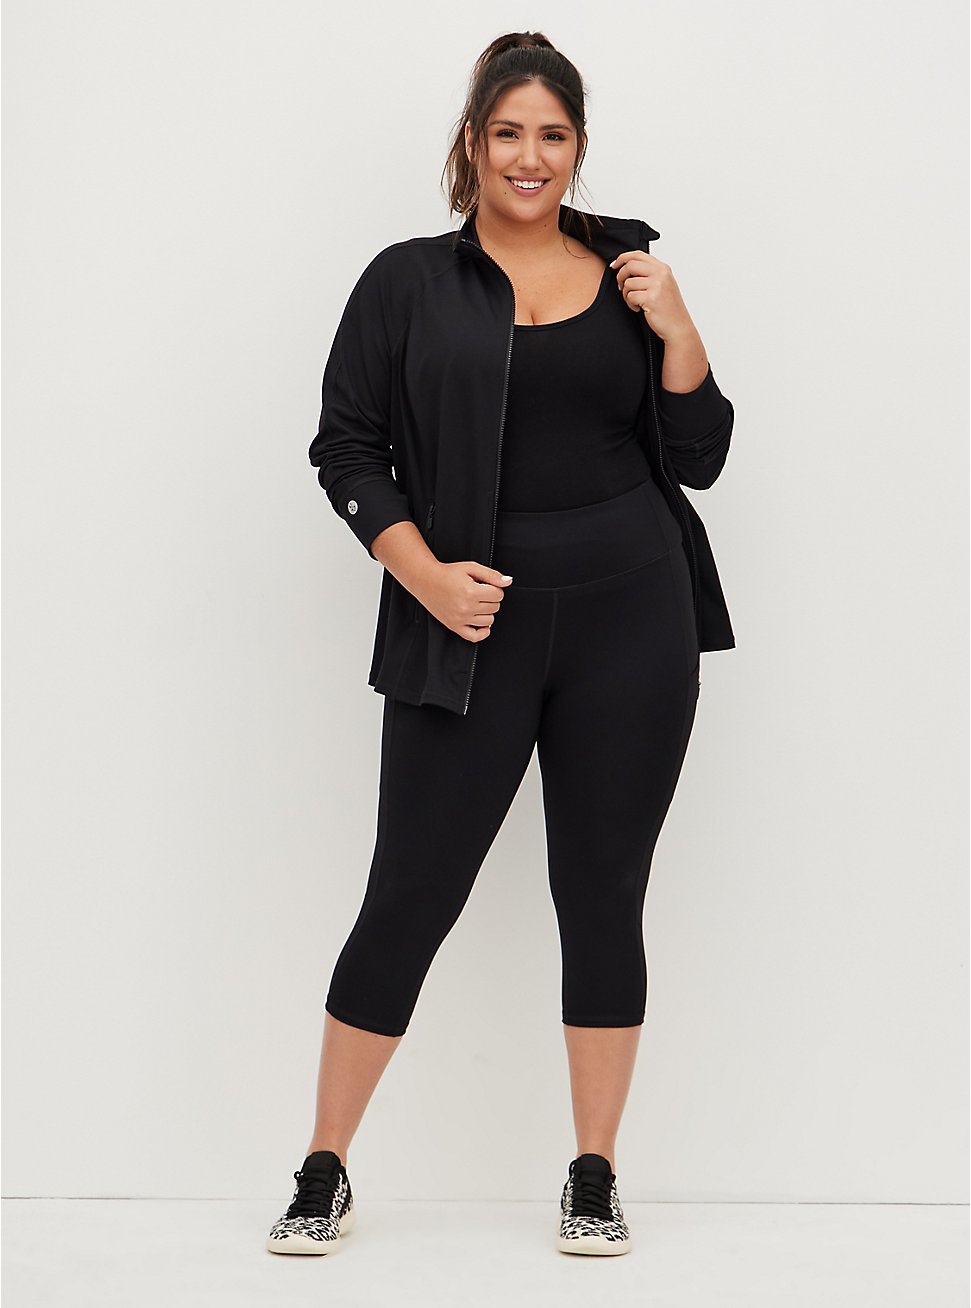 Black Wicking Capri Active Legging with Pockets, DEEP BLACK, hi-res